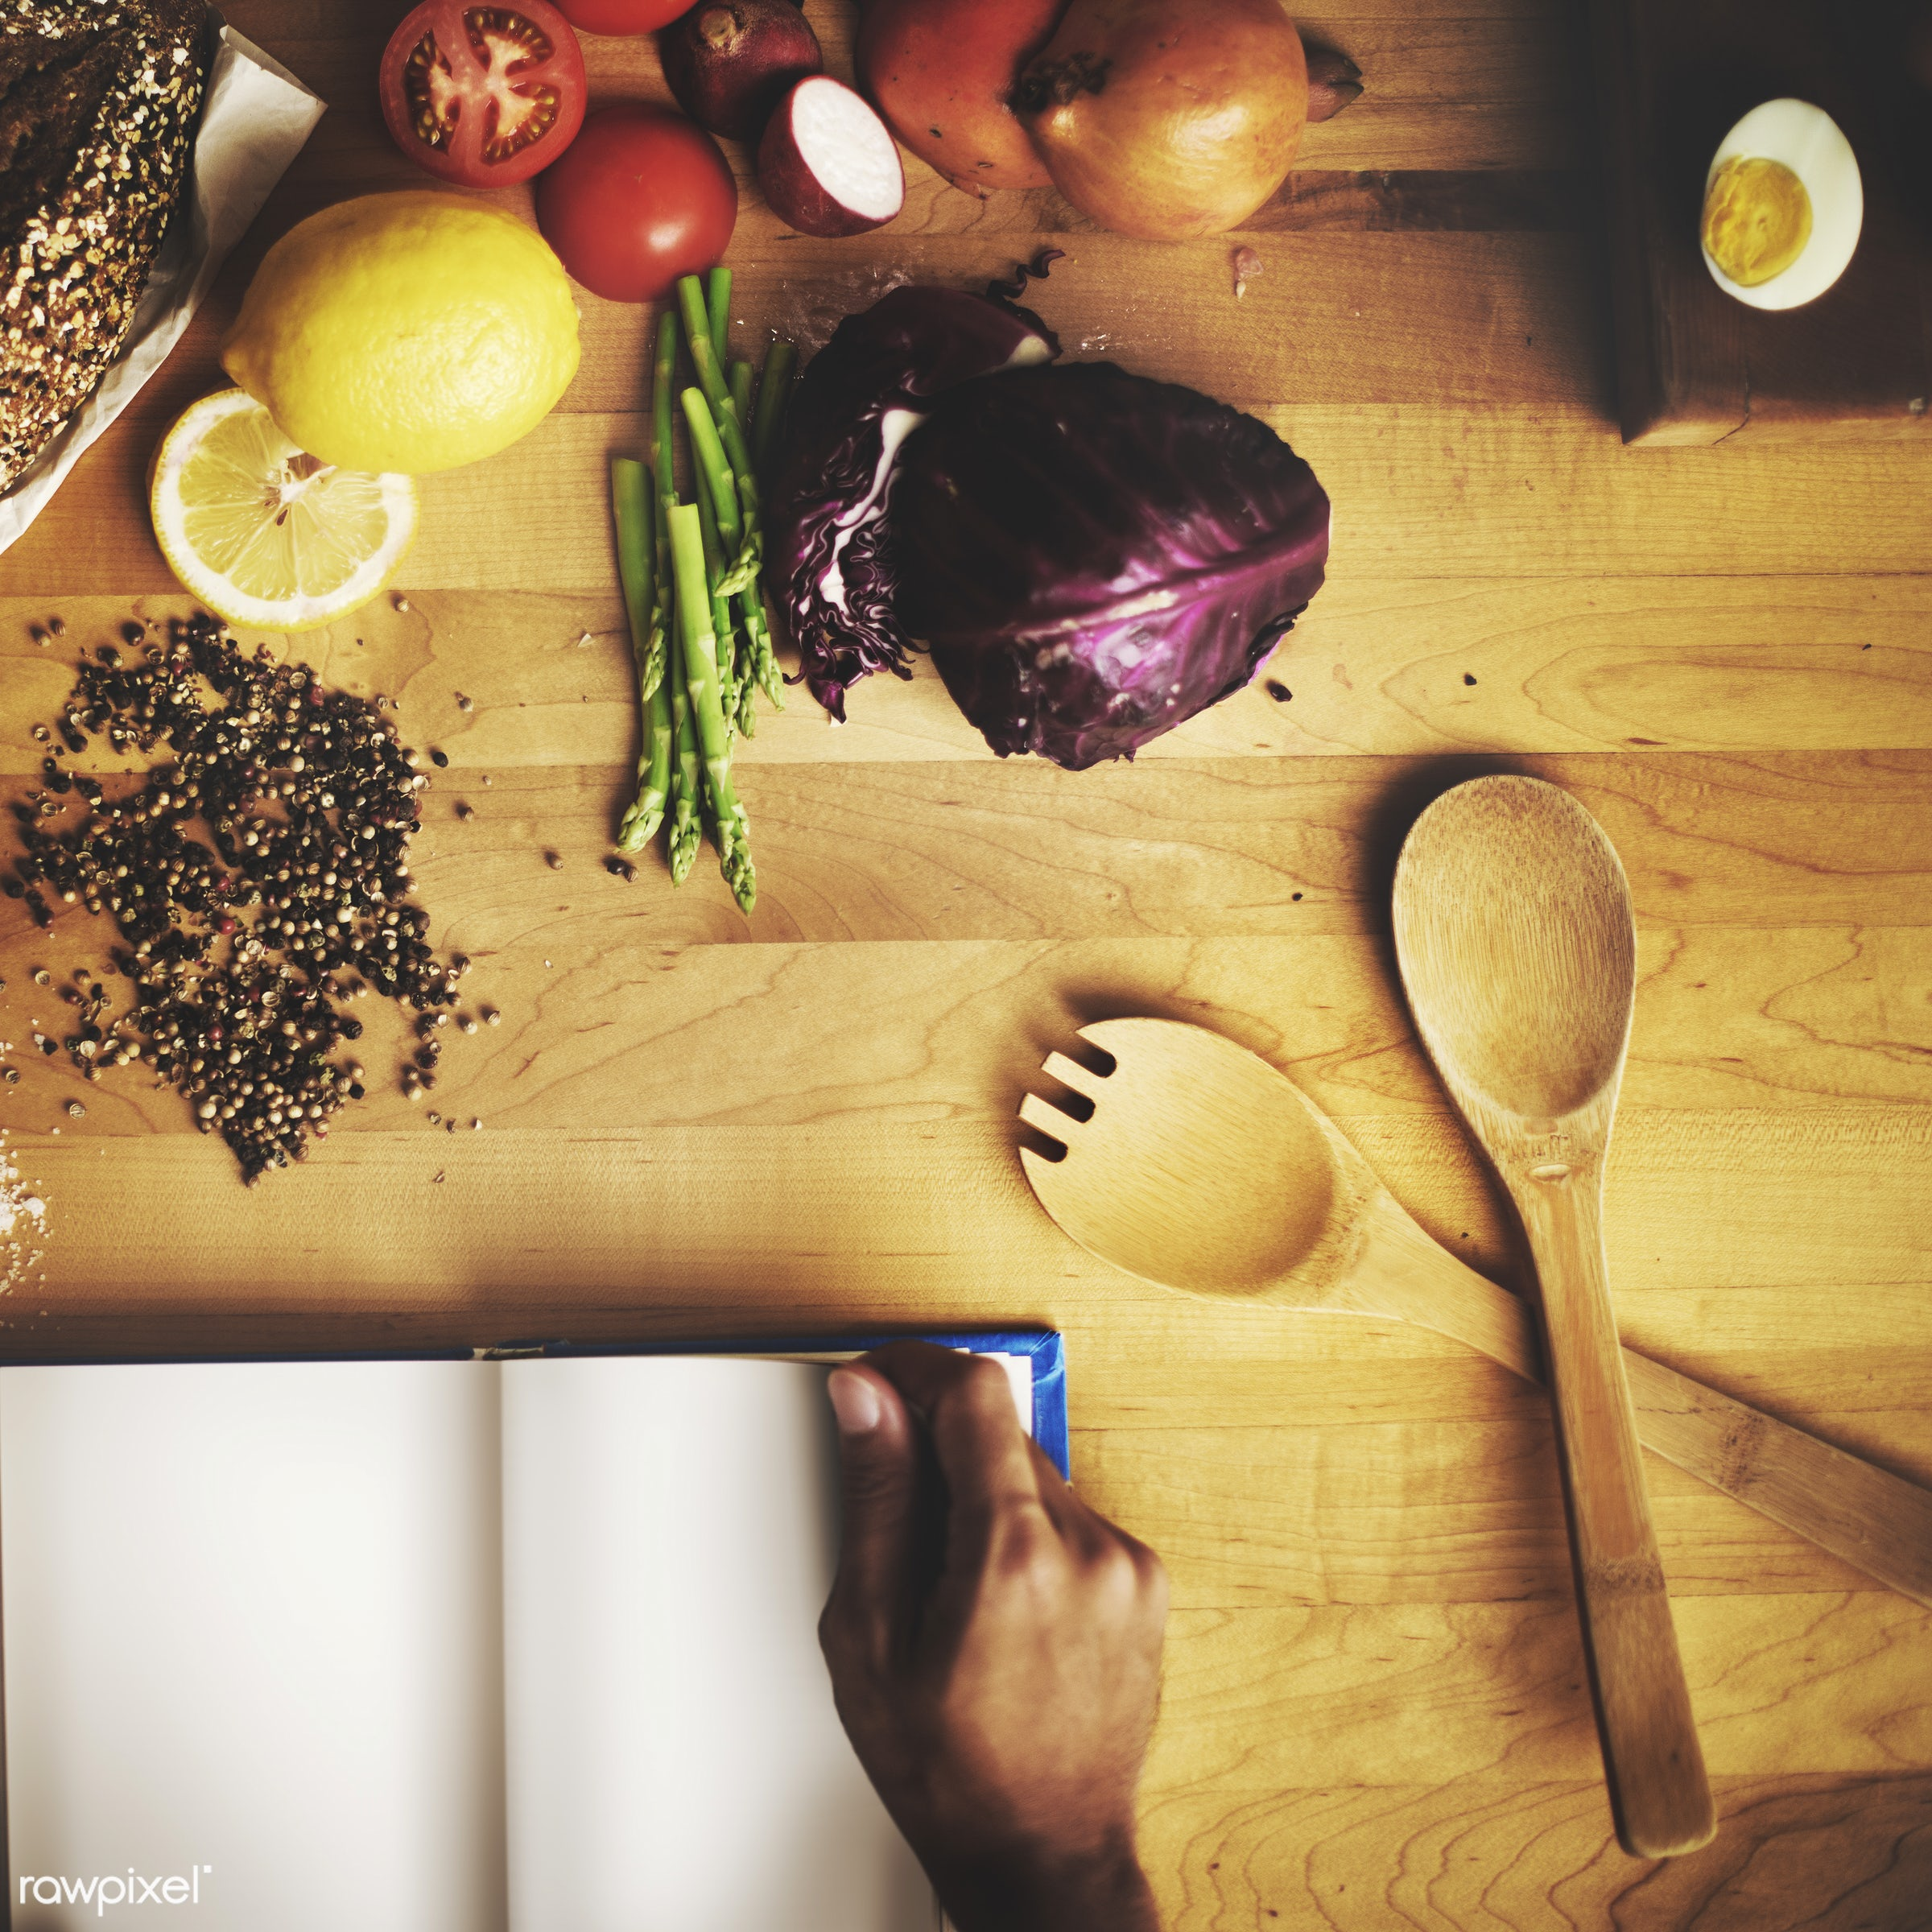 aerial view, blank, book, bread, chef, cook, cooking, copy space, cuisine, dish, eggs, equipment, find, food, human, indoors...